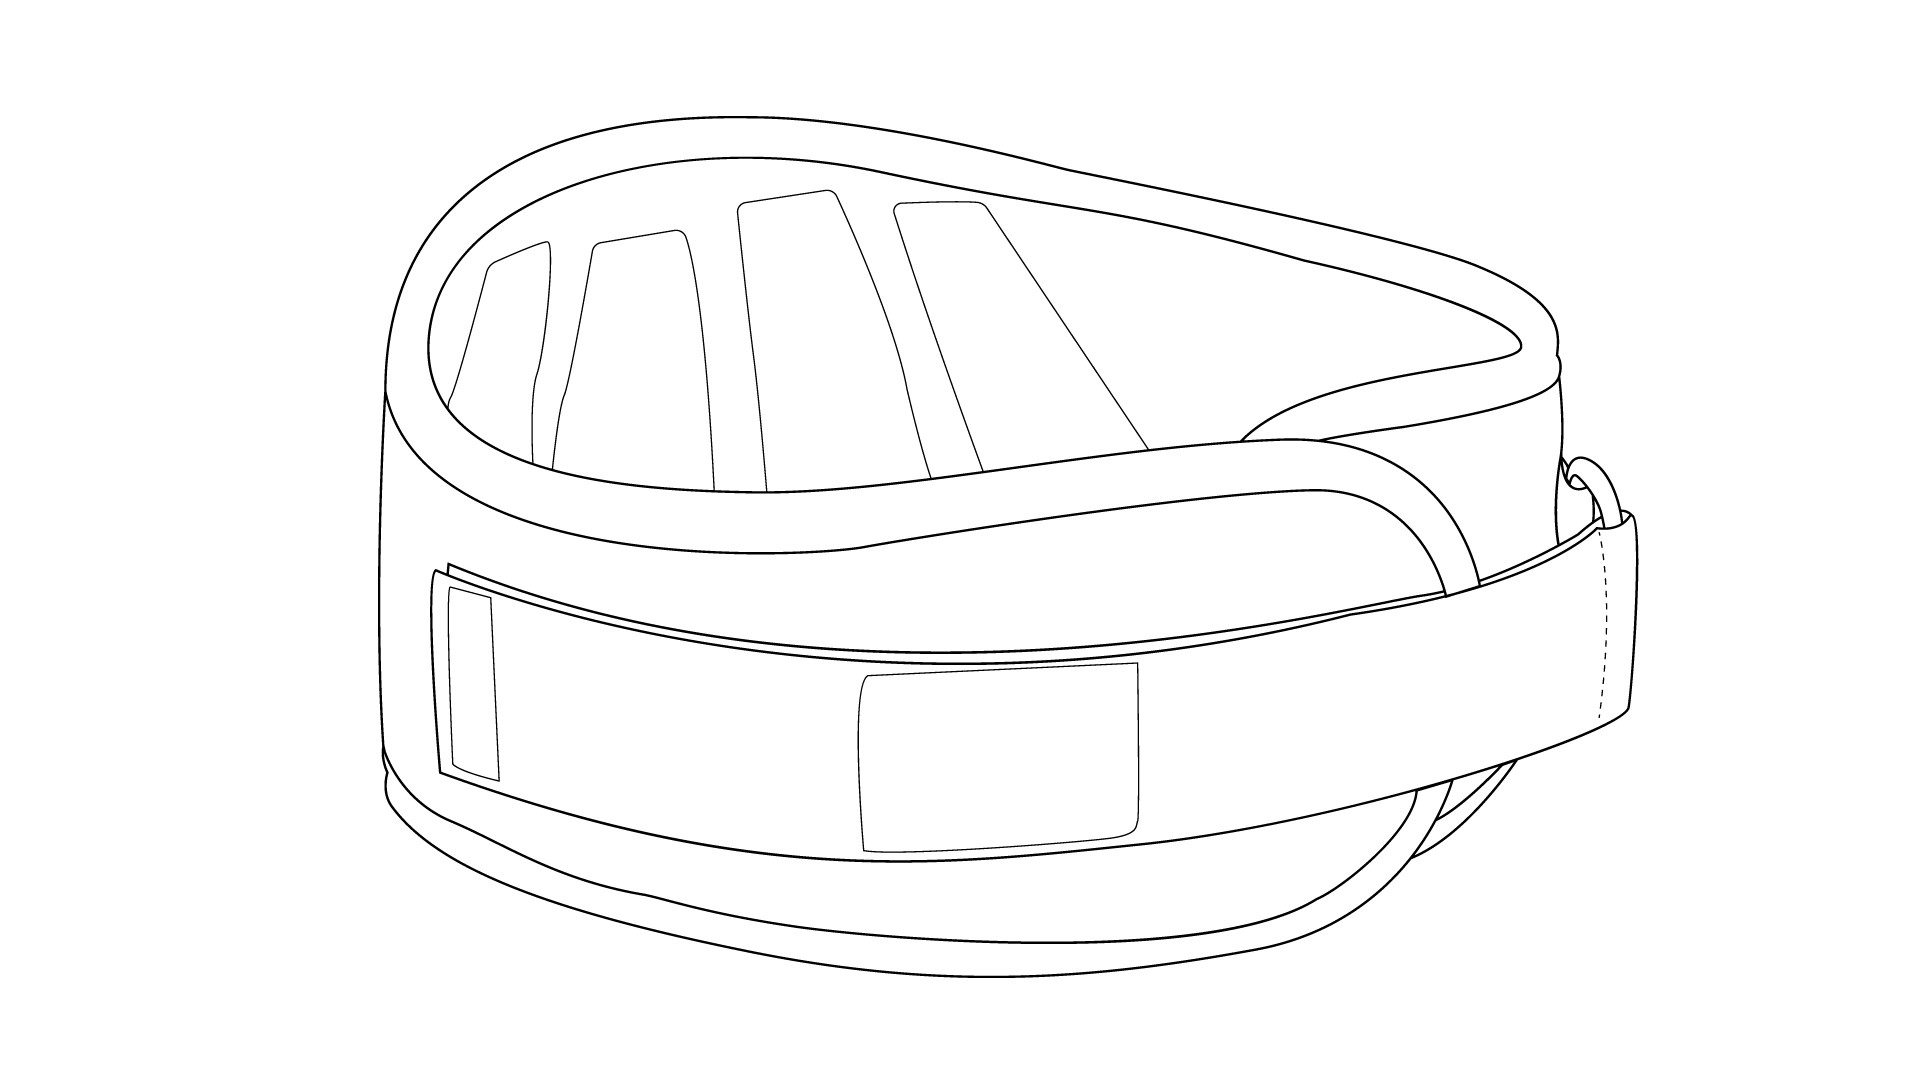 Line Drawing of Weight Belt, with logos added